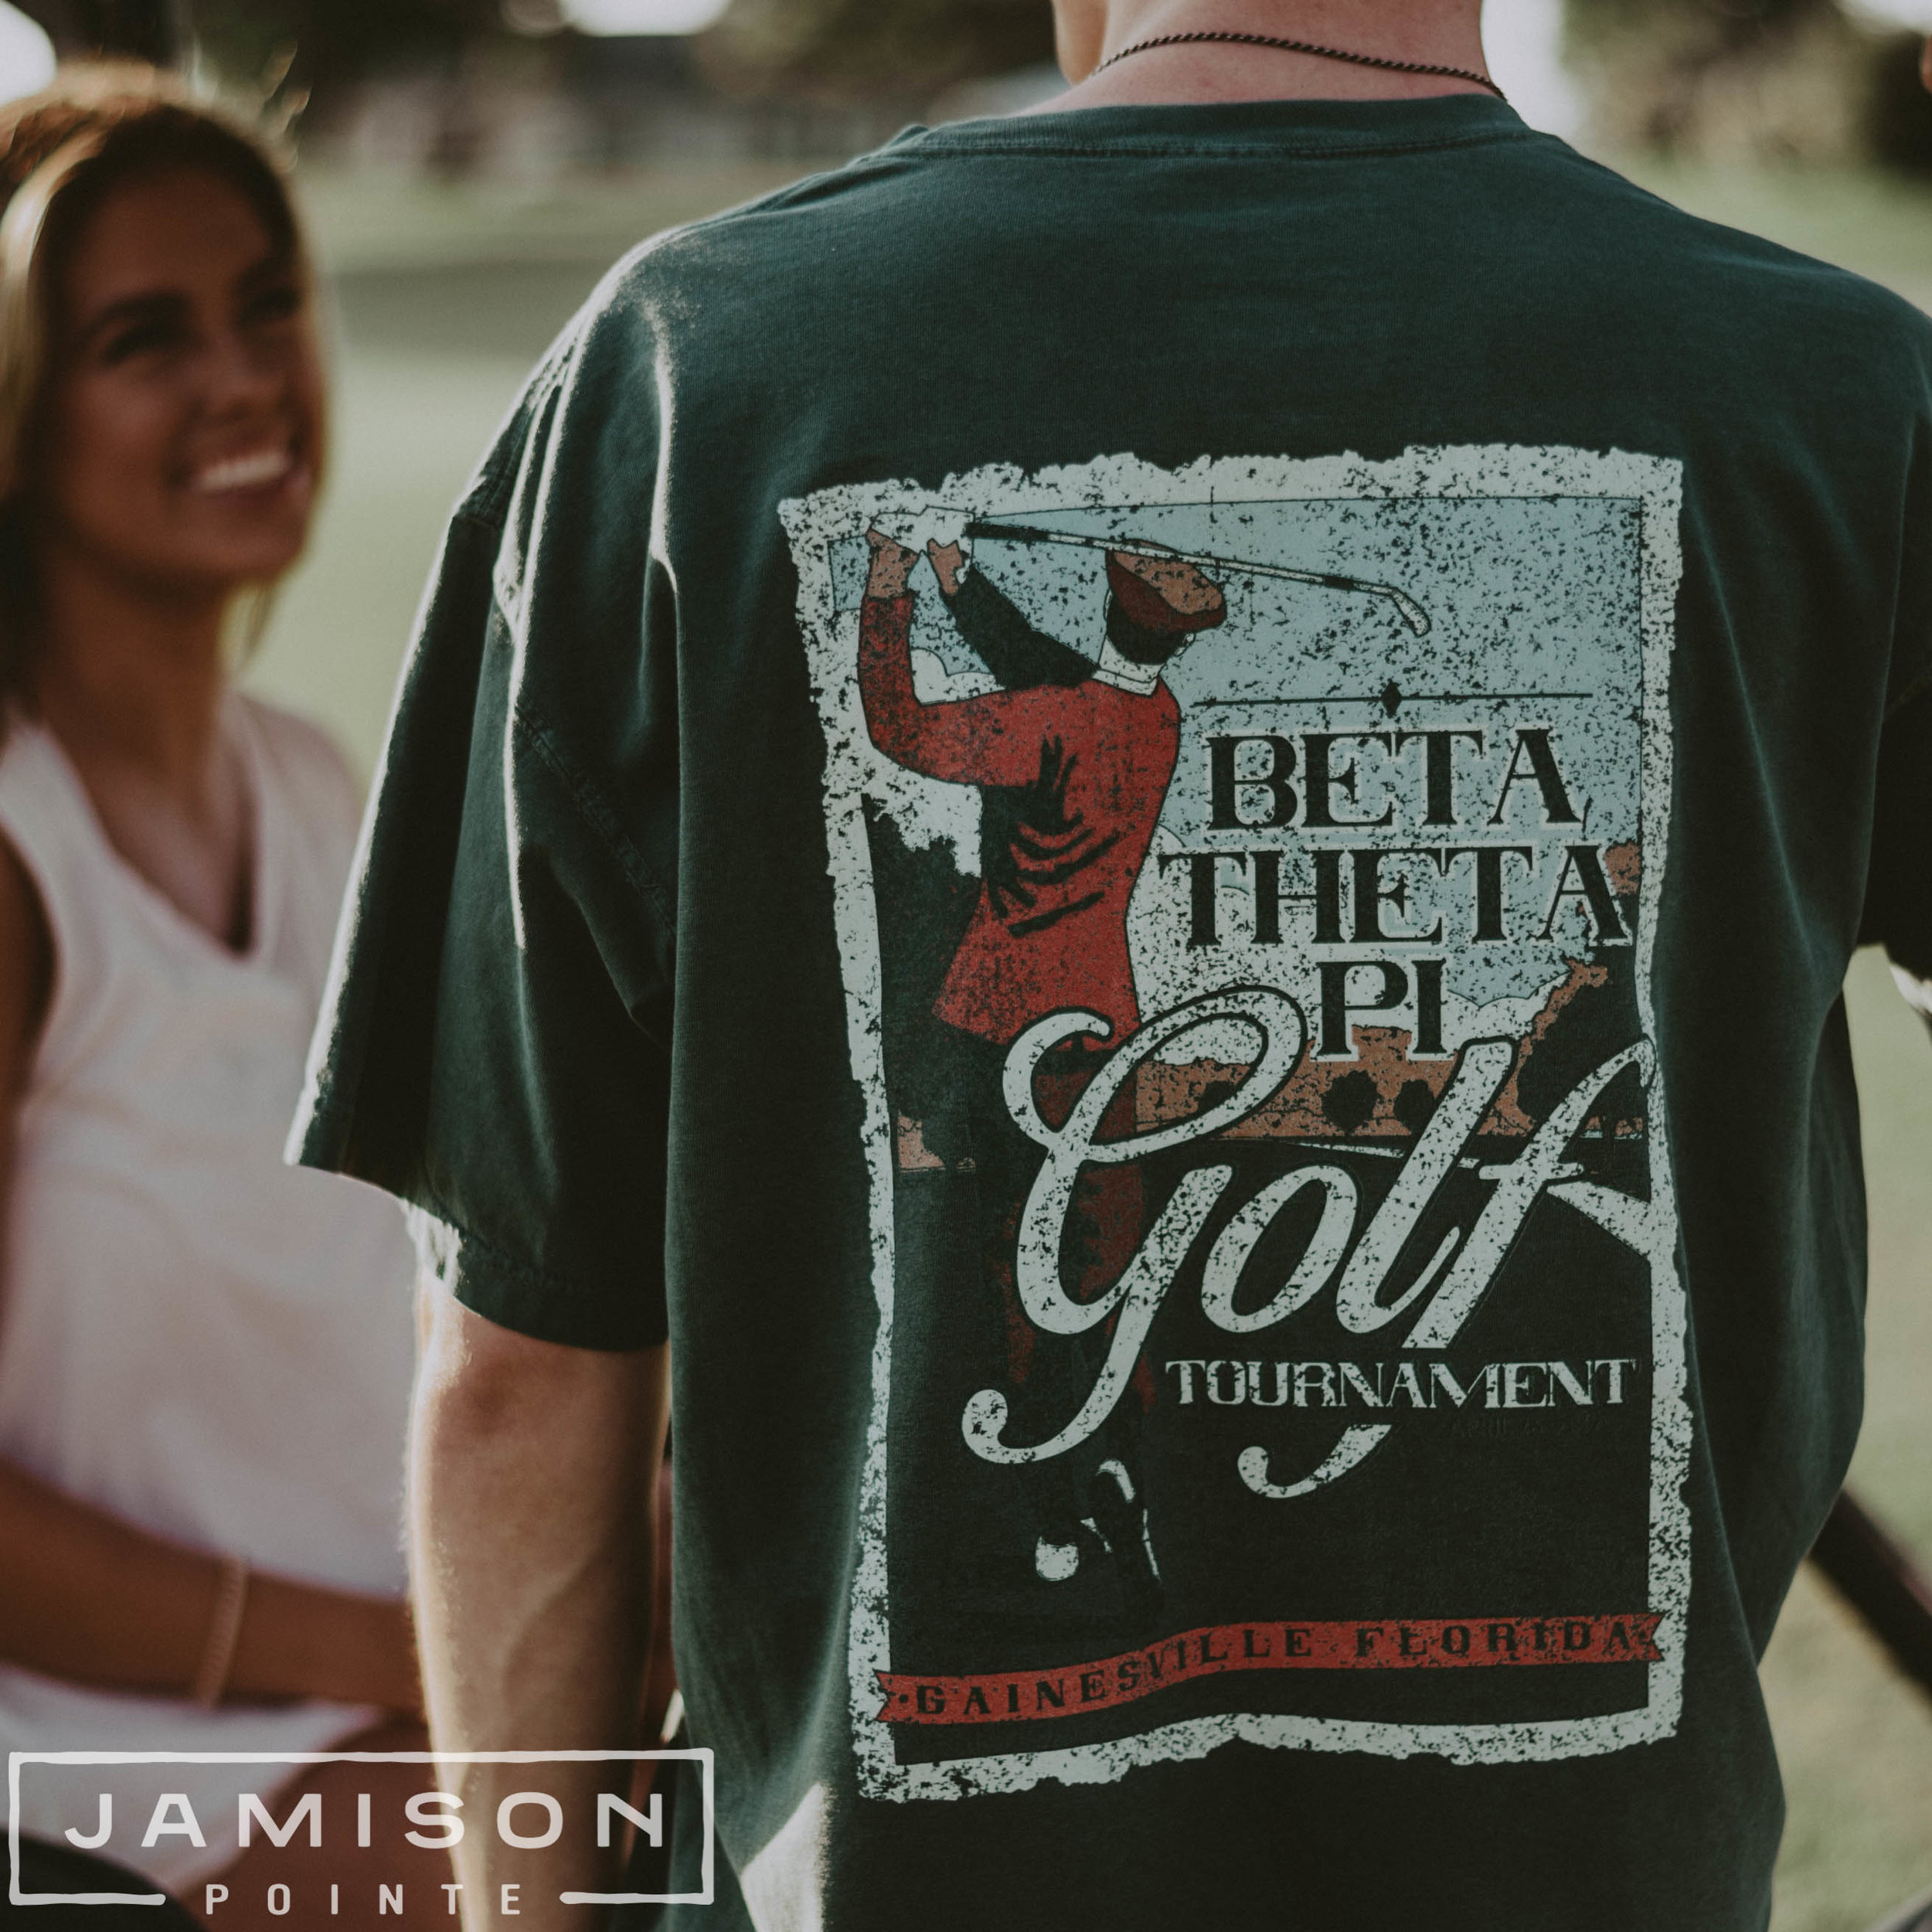 Beta Theta Pi Golf Tournament Tee